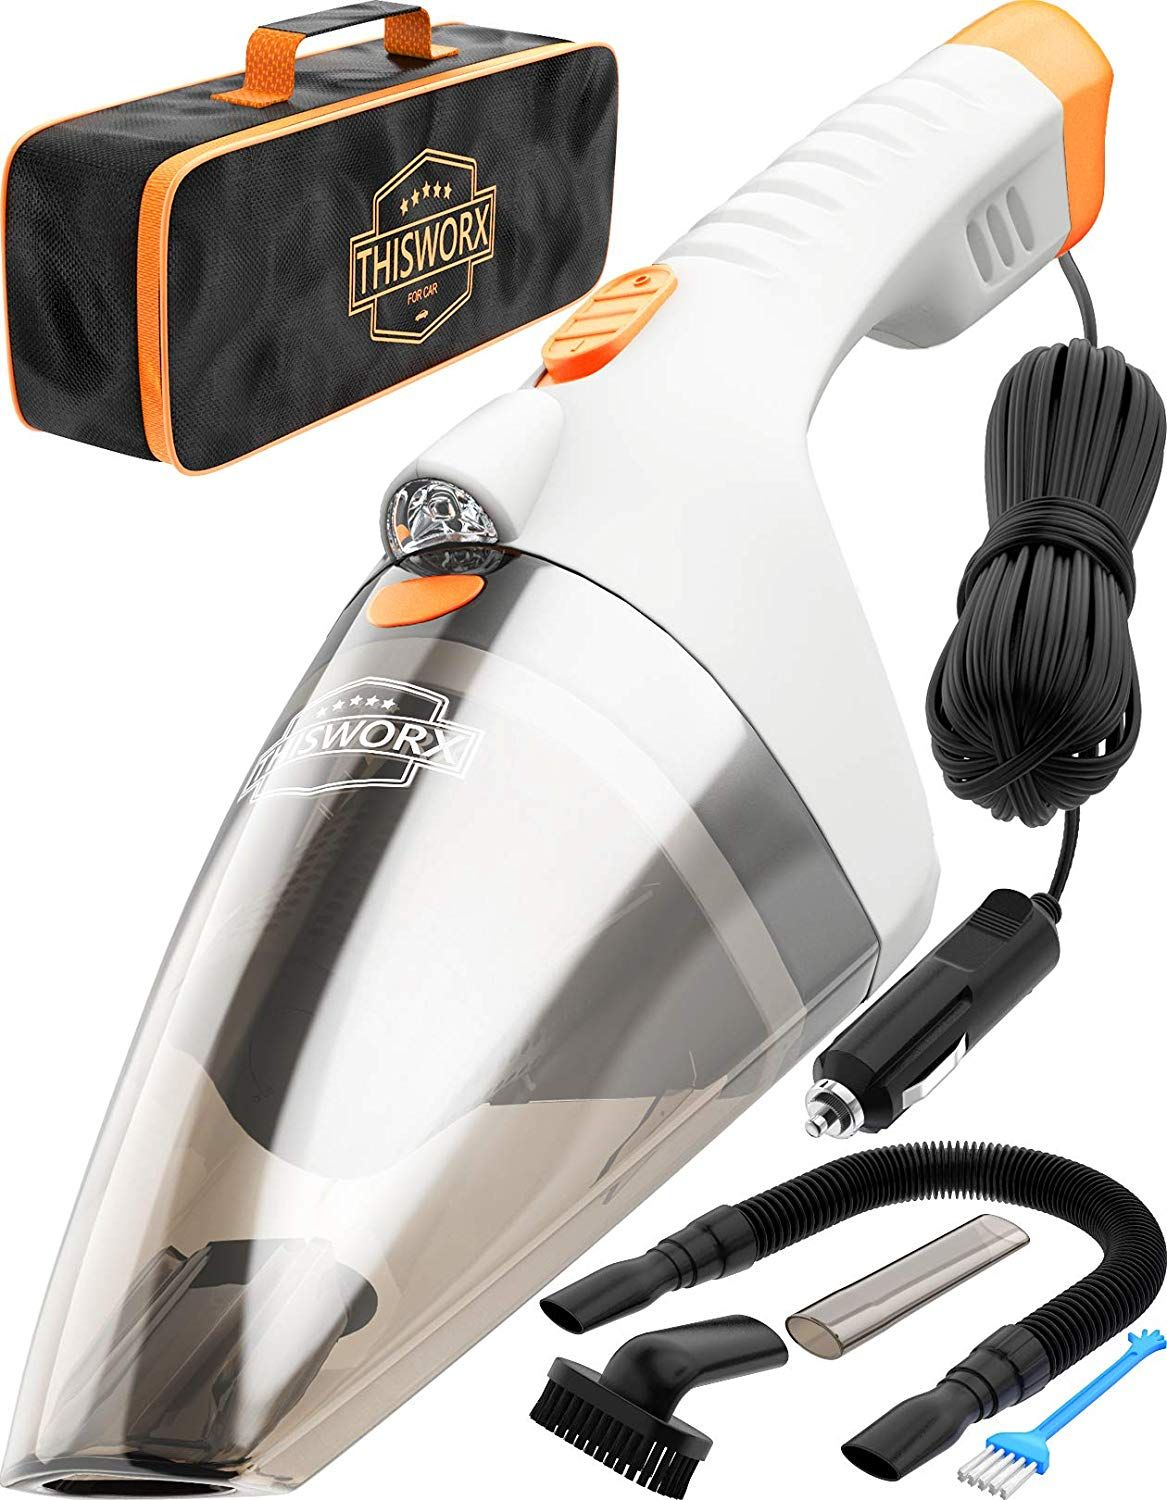 Car Vacuum Cleaner high Power 110W 12v Corded auto